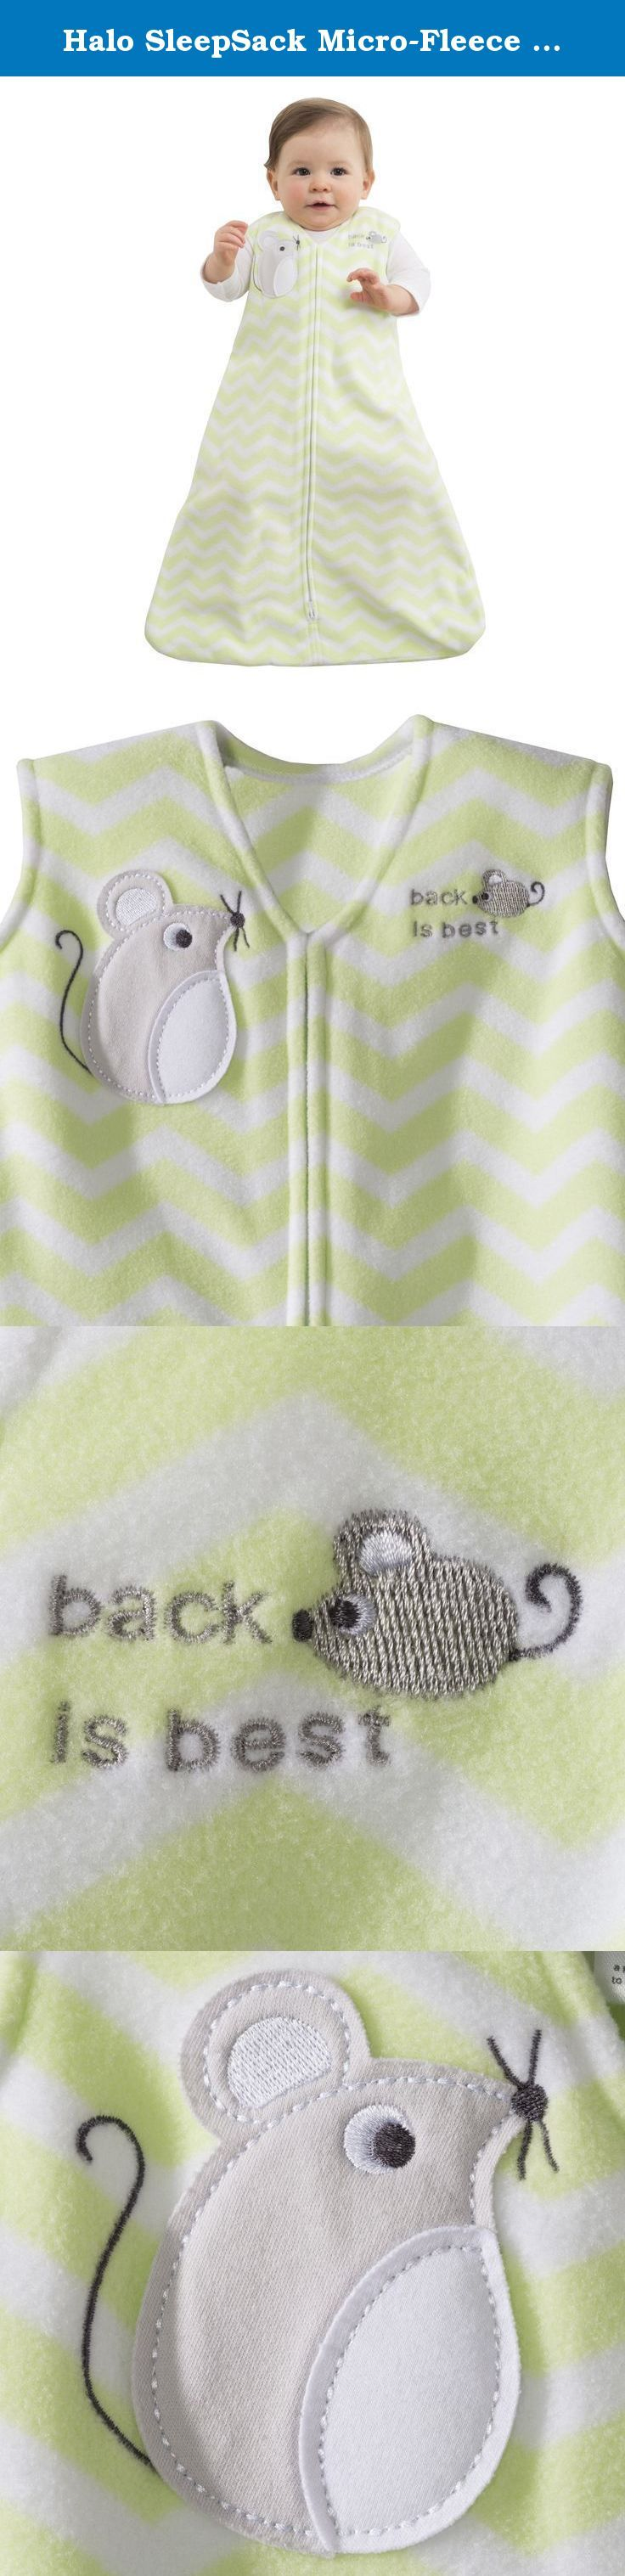 Halo SleepSack Micro-Fleece Wearable Blanket, Green Zig Zag, Small. HALO SleepSack wearable blanket: The Safer Way to Sleep The HALO SleepSack wearable blanket replaces loose blankets in the crib that can cover your baby s face and interfere with breathing. In addition to helping your baby sleep safer, the HALO SleepSack wearable blanket helps your baby sleep better, too. It is a warm cuddly blanket they cannot kick off; ensuring baby sleeps soundly throughout the night. Used in hospital...